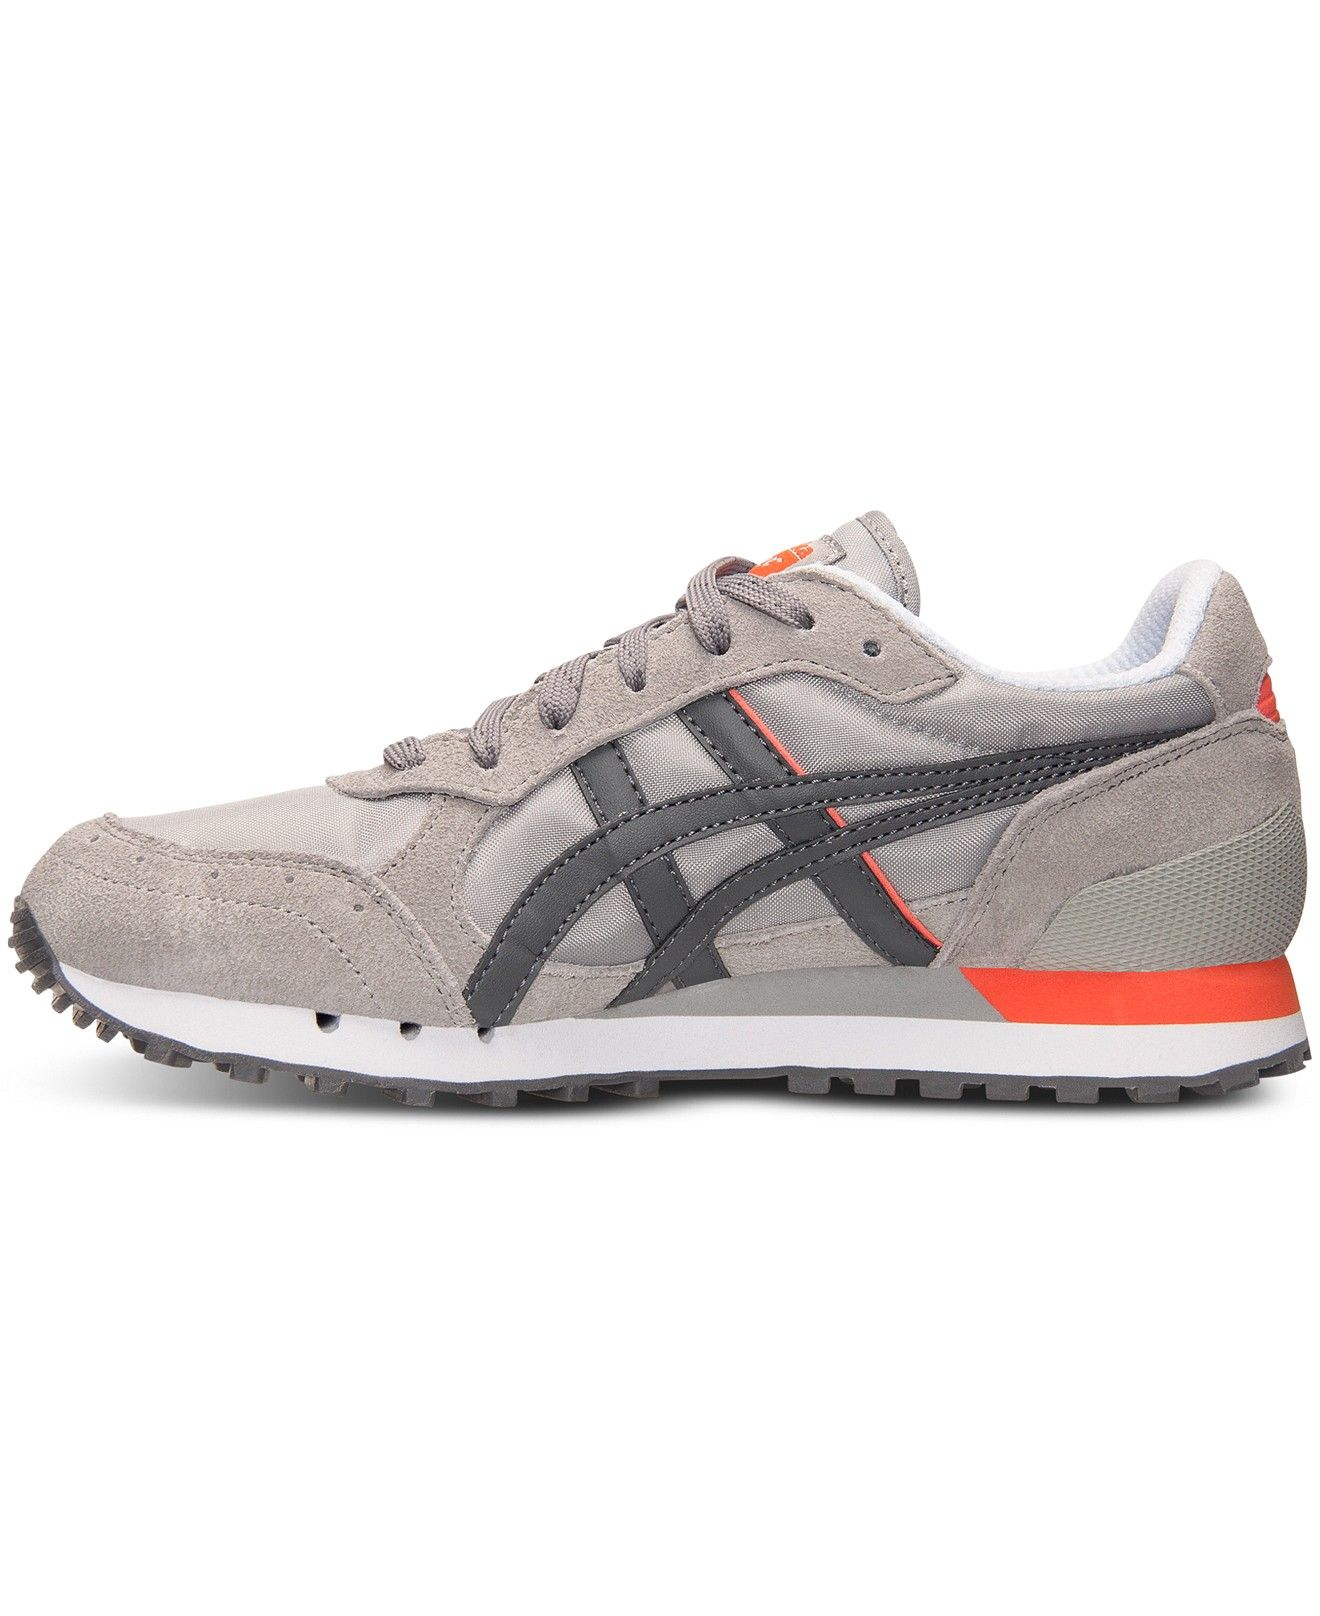 Asics Women\u0027s Onitsuka Tiger Colorado 85 Casual Sneakers from Finish Line -  Sneakers - Shoes -